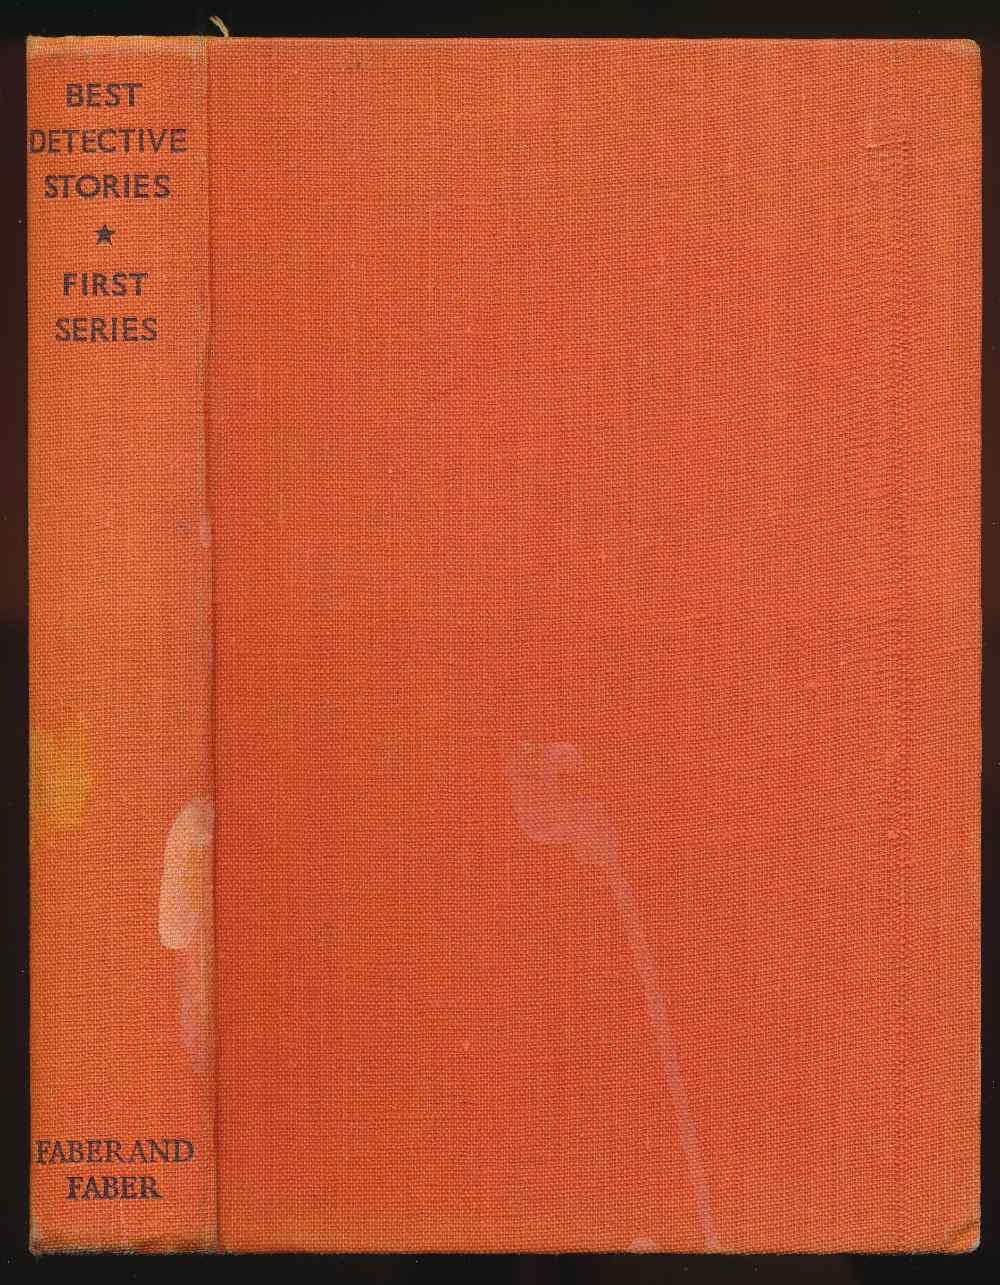 Best detective stories : first series